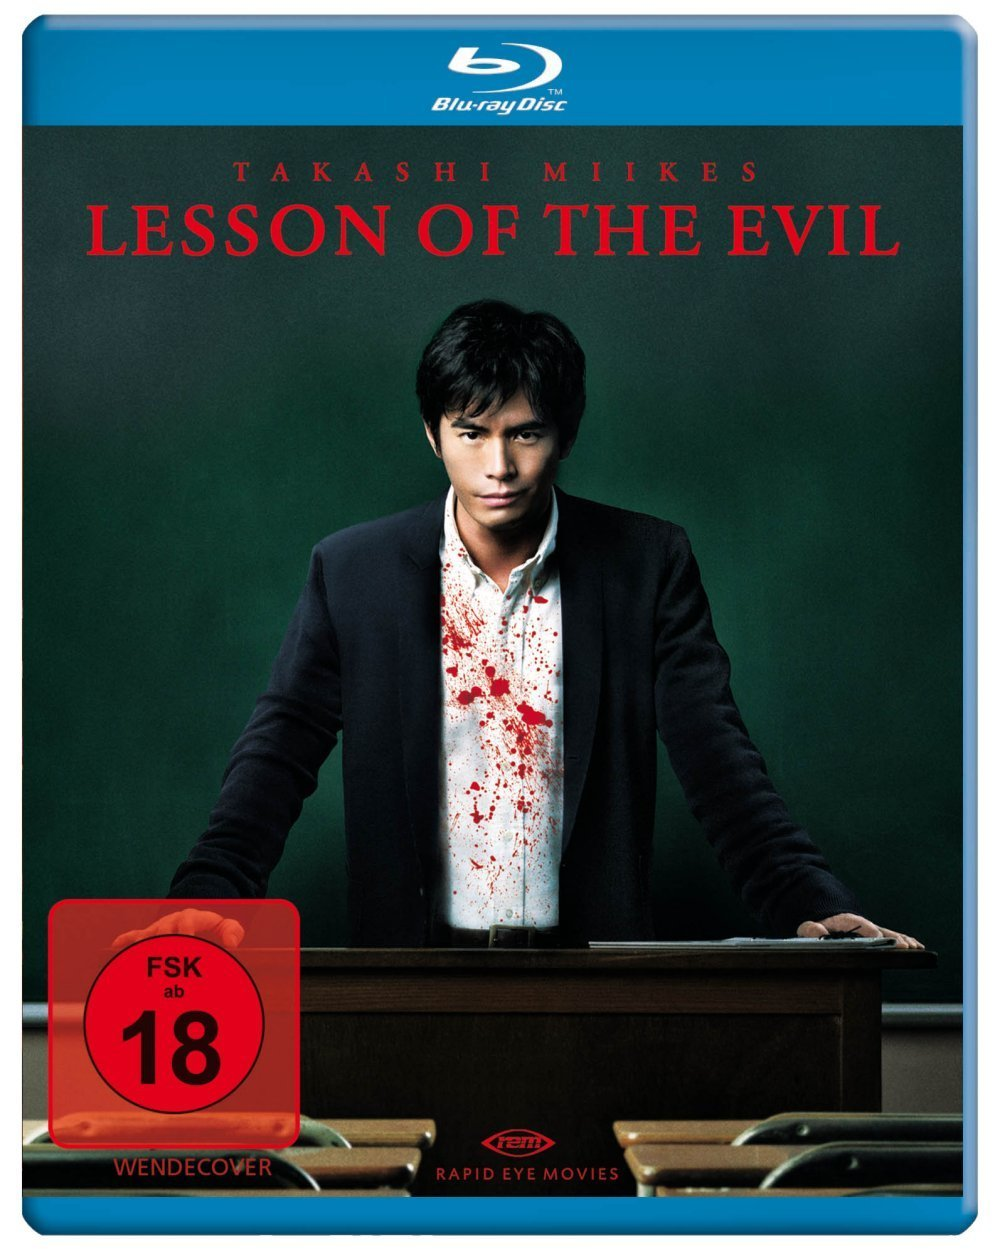 Lesson Of The Evil (Spielfilm, DVD/Blu-Ray)